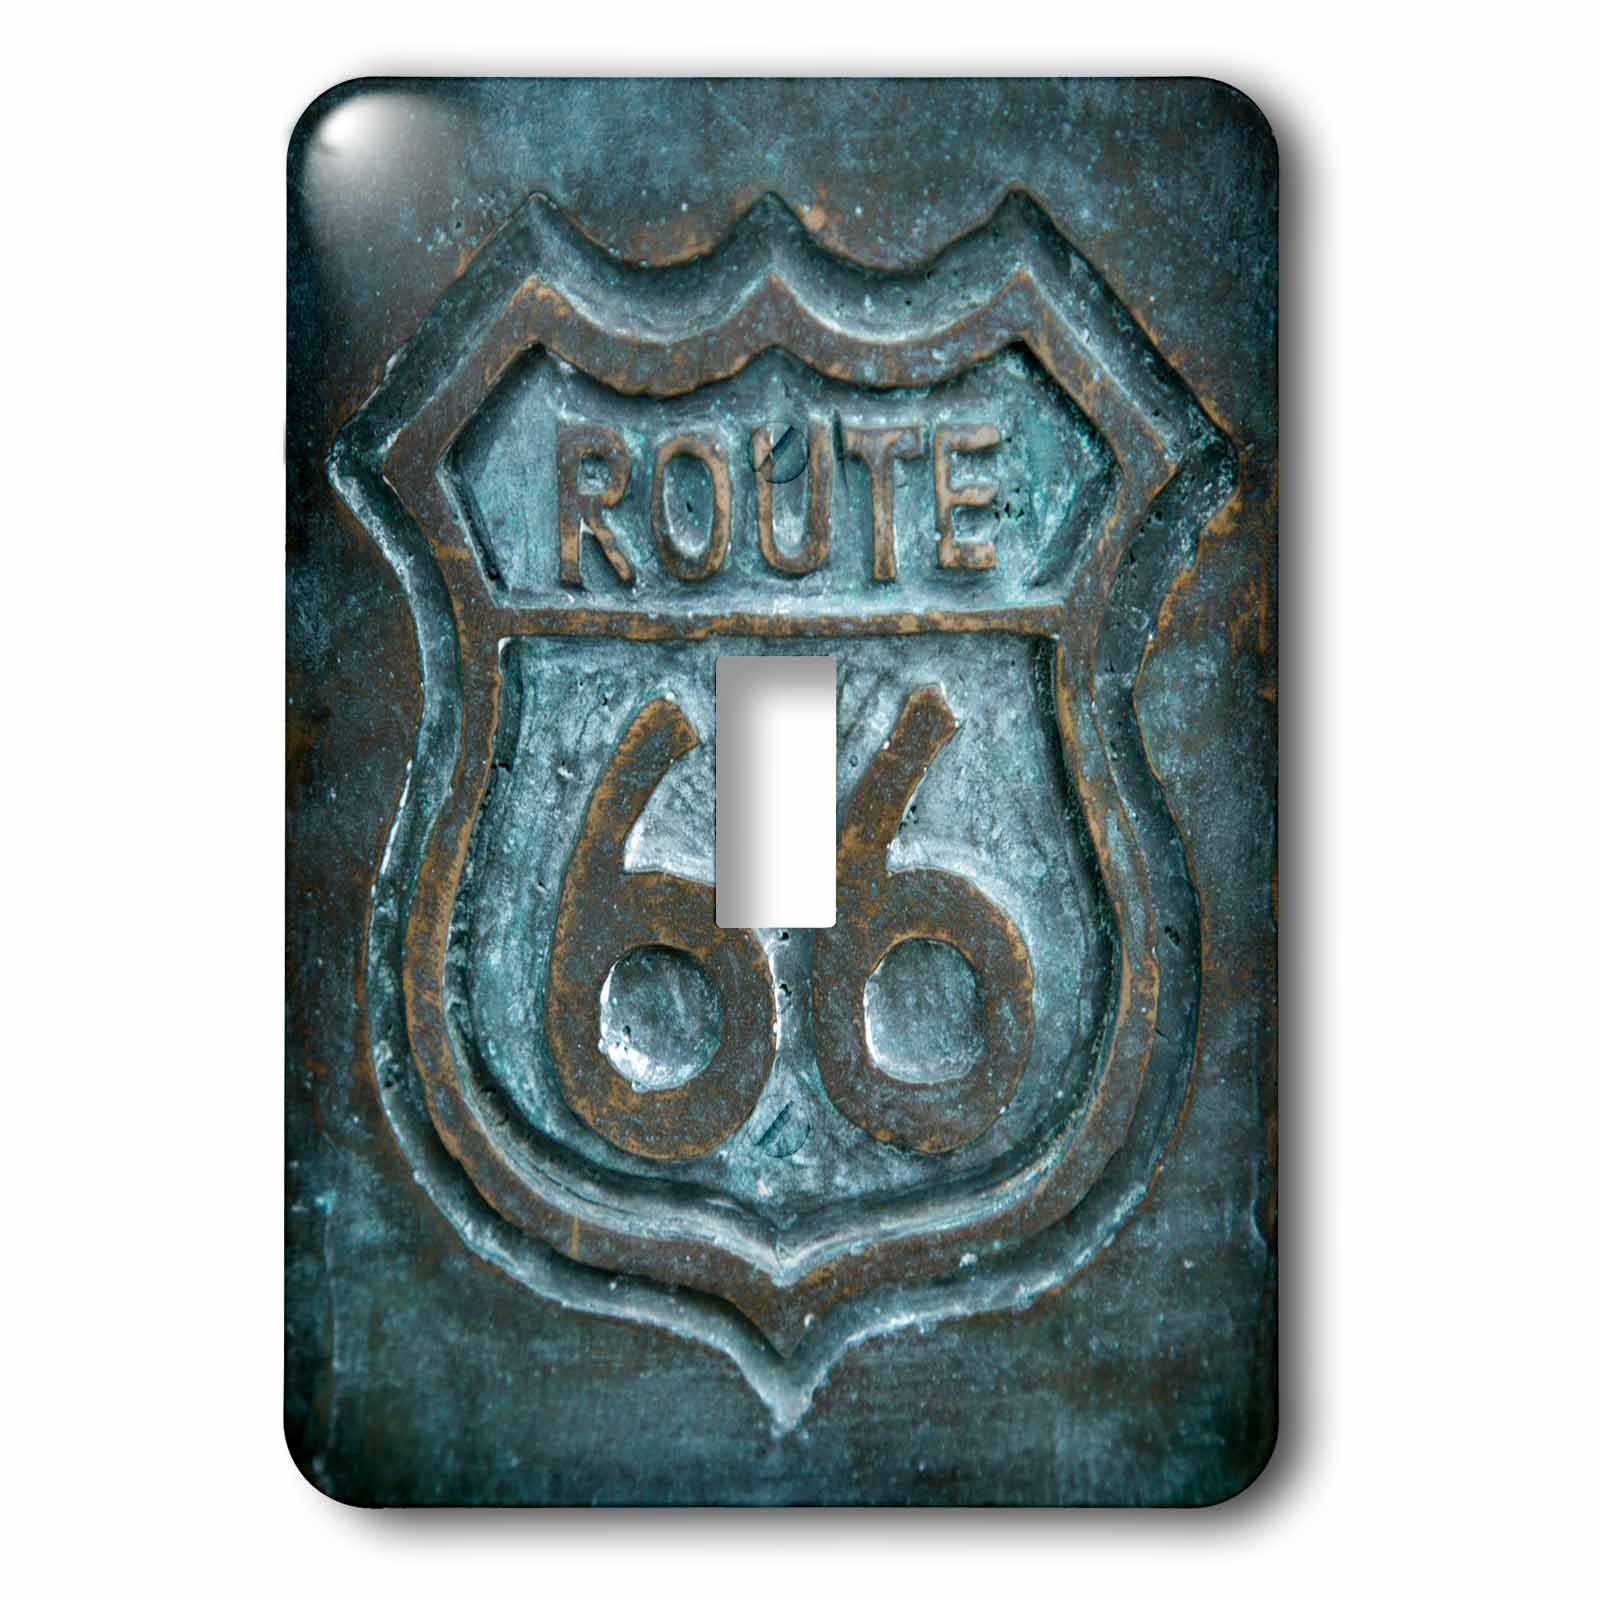 3dRose lsp_230770_1 Joliet, Illinois, USA. Route 66 Sign. Single Toggle Switch by 3dRose